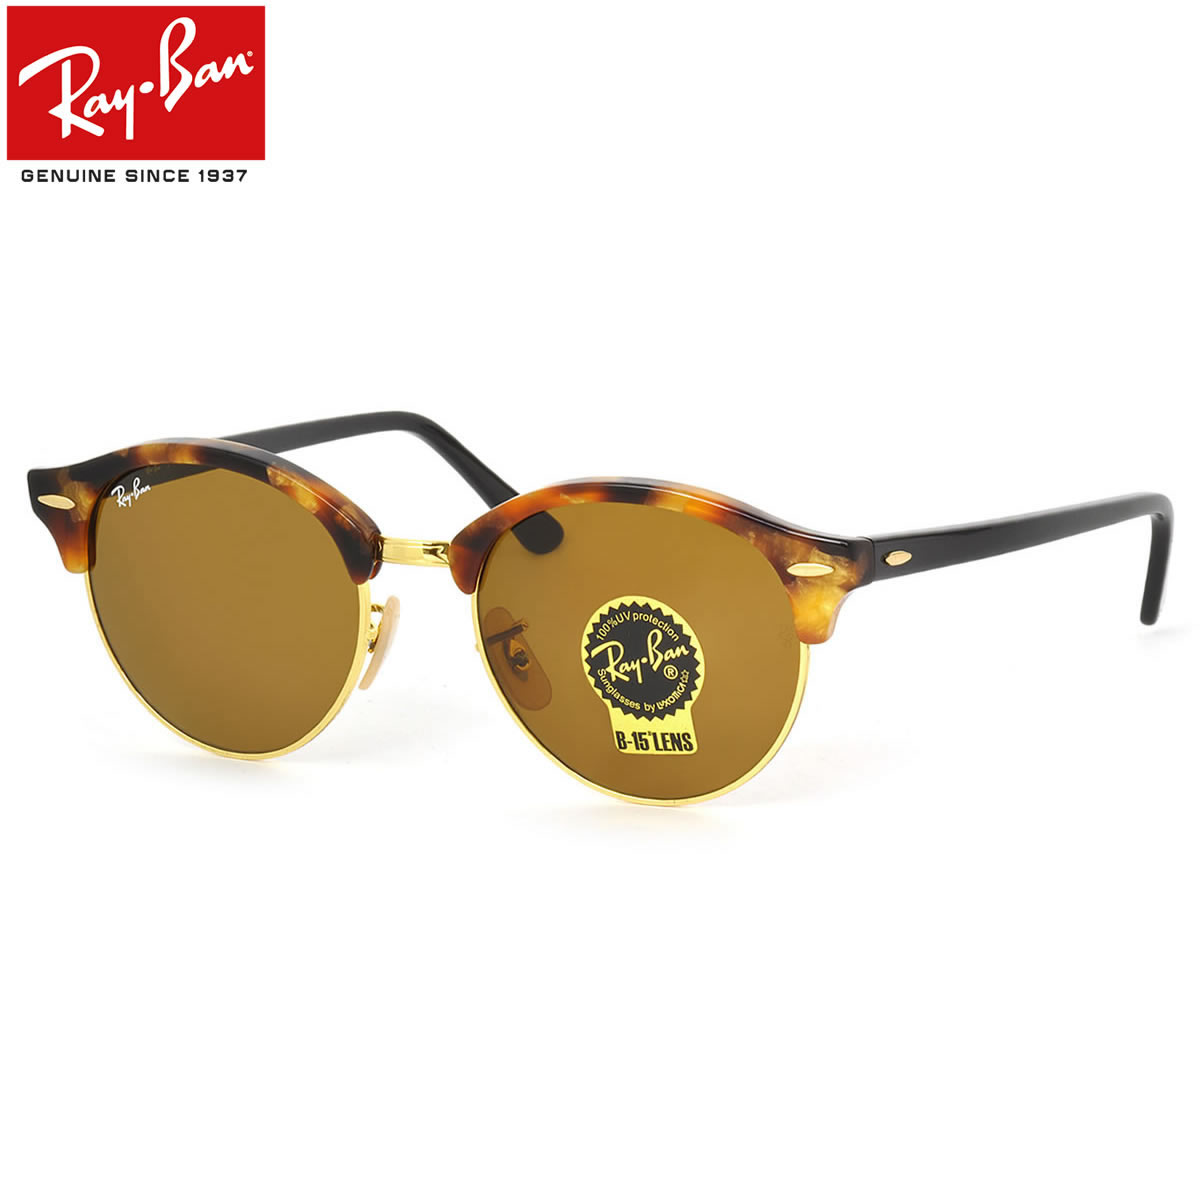 dcd540f437a New icons CLUBROUND (clubround) was born from the ray-ban. It is a unique  model that mixes popular CLUBMASTER (Club master) and ROUND (round).